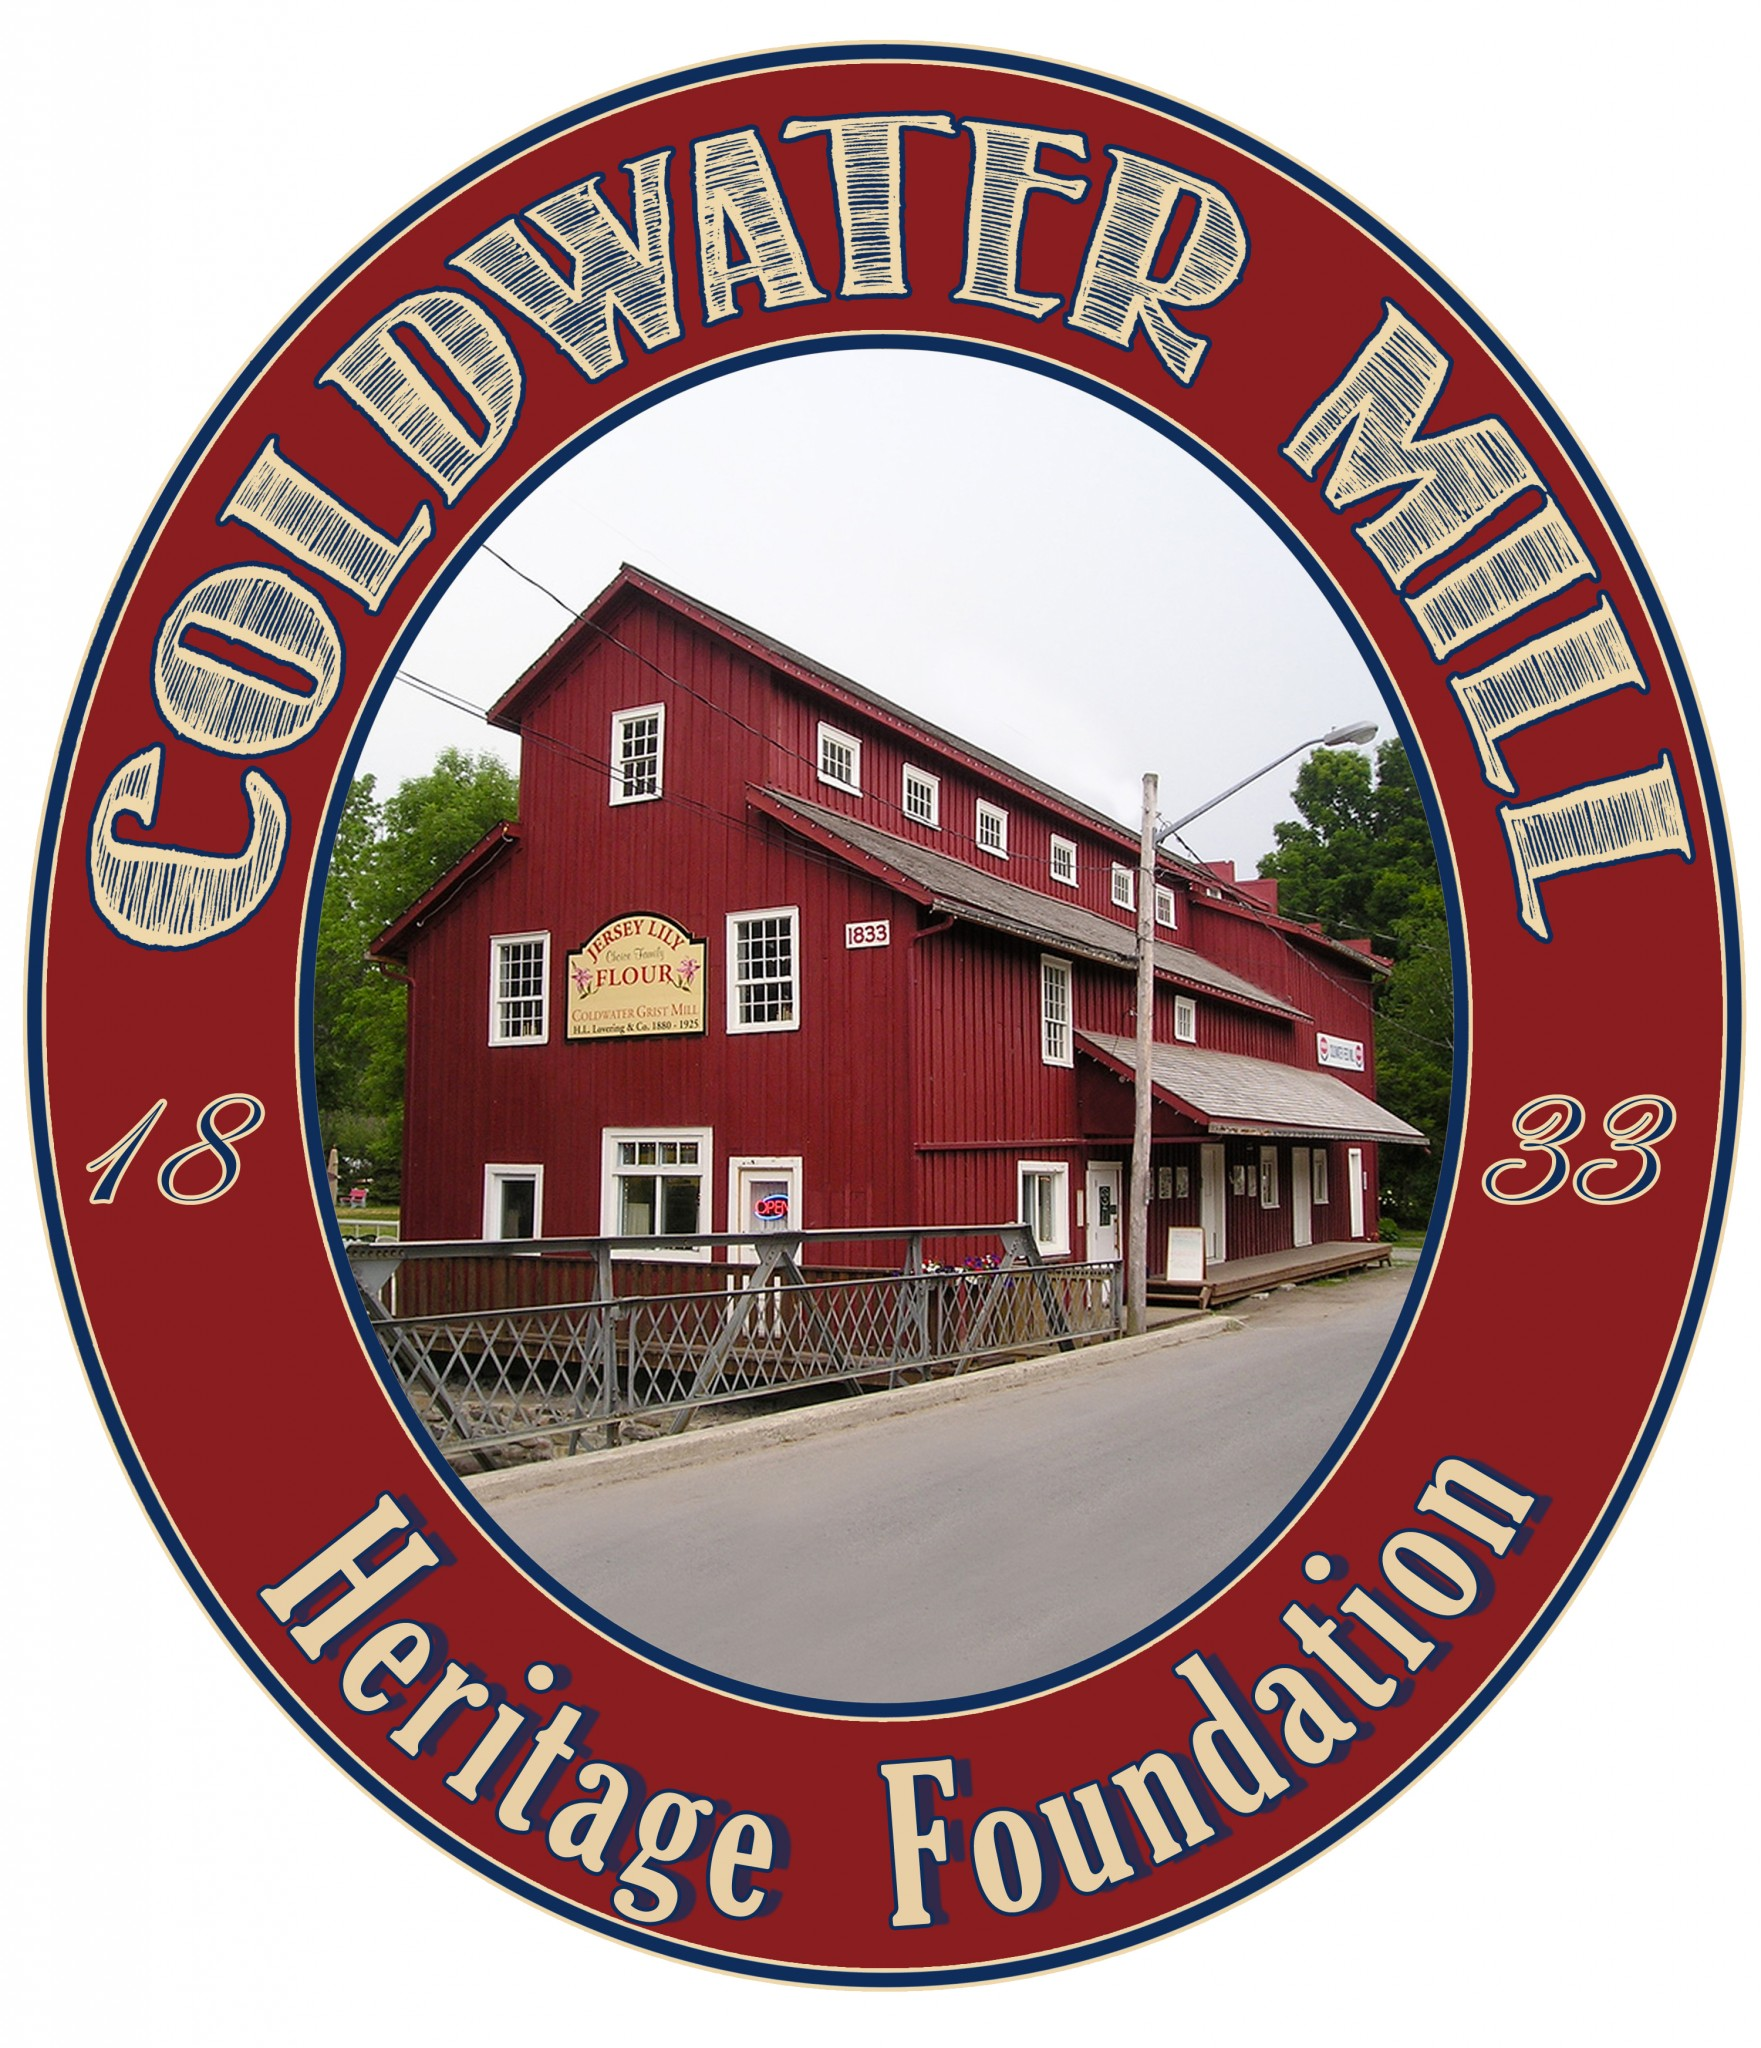 coldwater mill logo colour version - COLDWATER MILL AND SEVERN TOWNSHIP LIBRARY CHRISTMAS MARKET